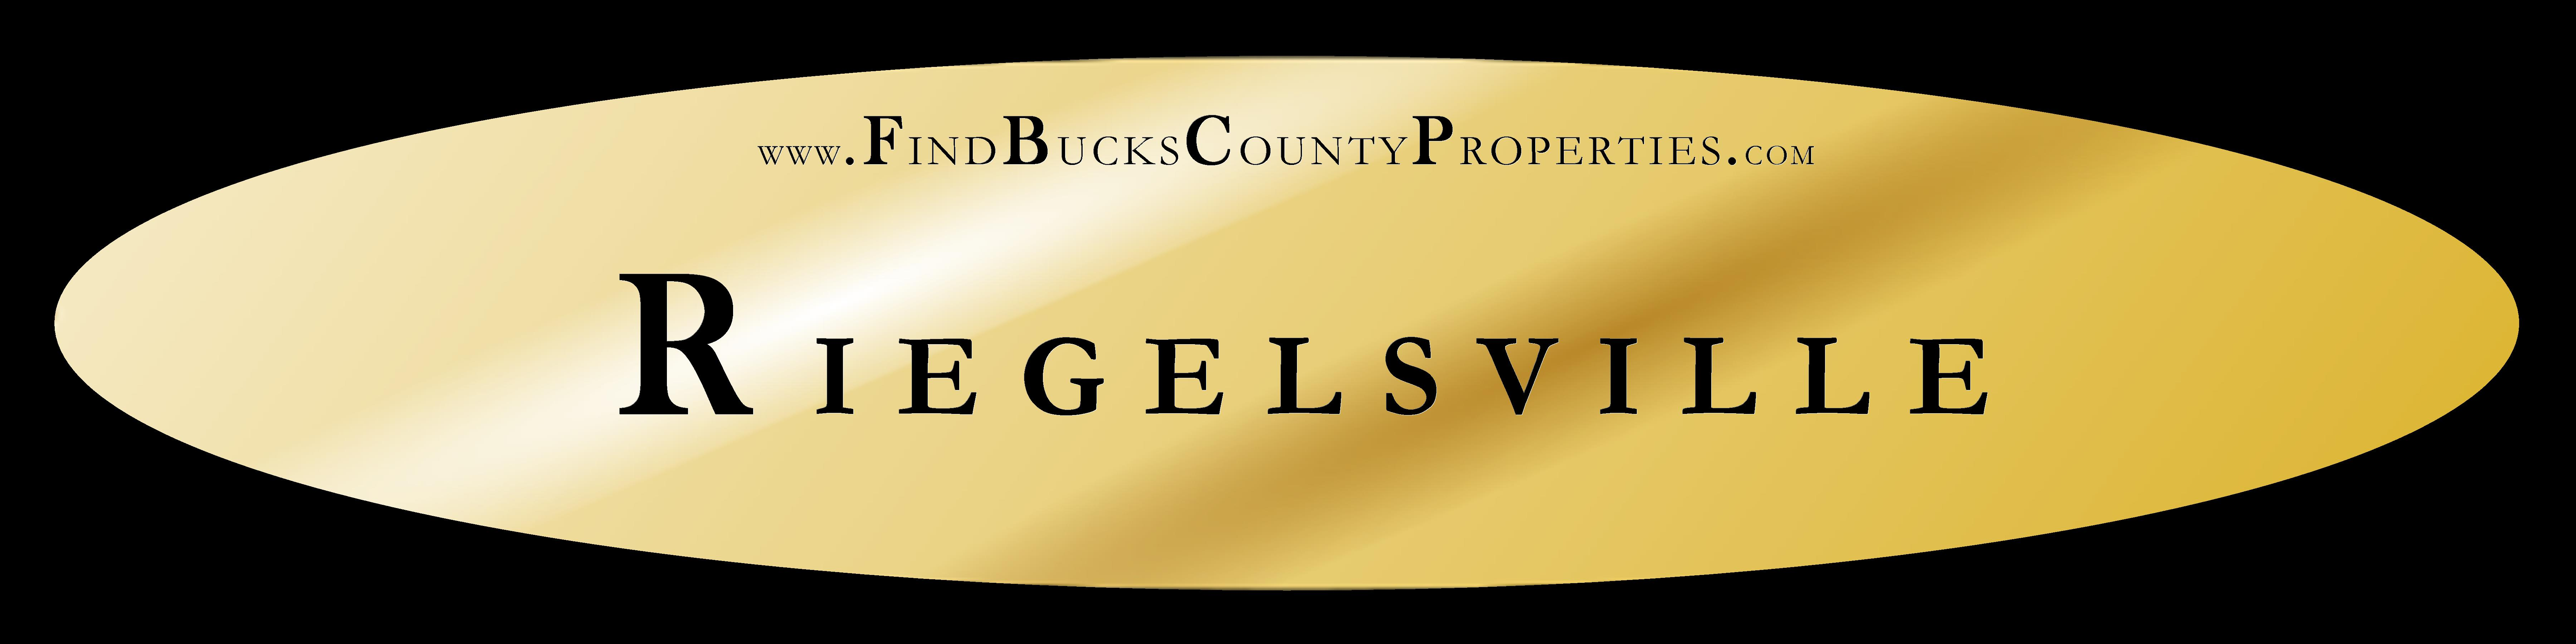 Riegelsville PA Homes for Sale | #Riegelsville | @Riegelsville | #RigelsvilleHomes